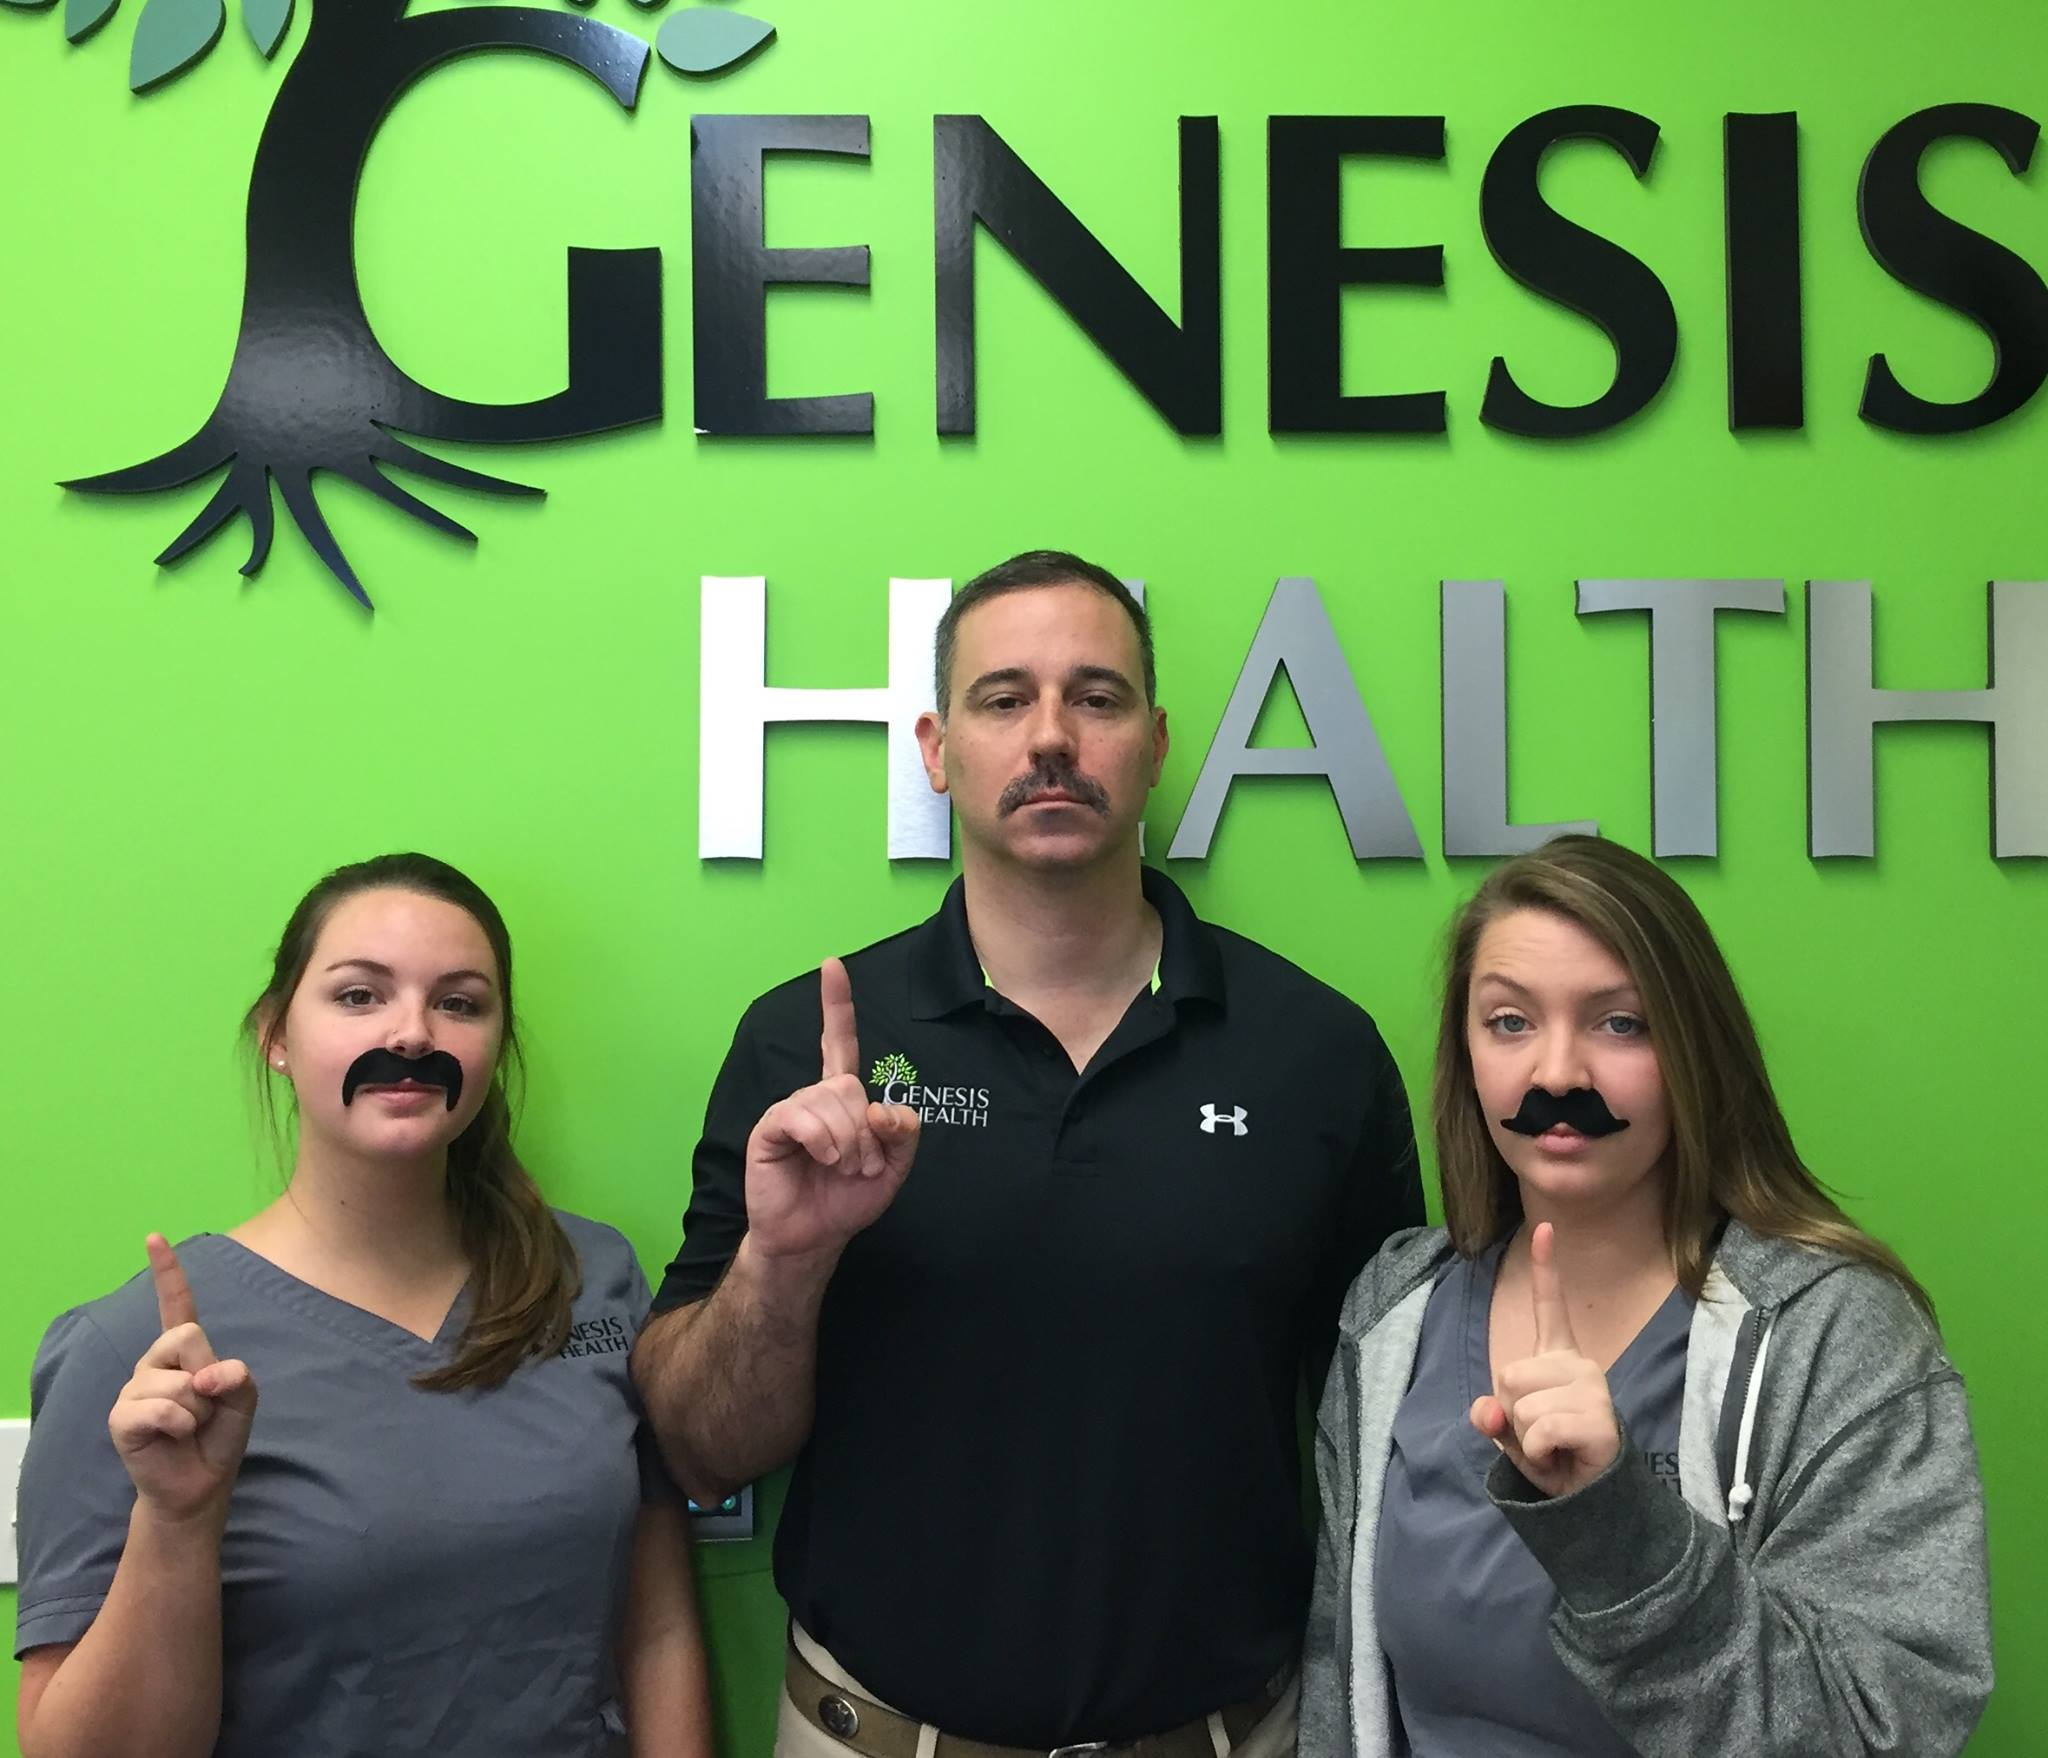 The team at Genesis Health chiropractic clinic in Opelika Alabama a 36801 chiropractor